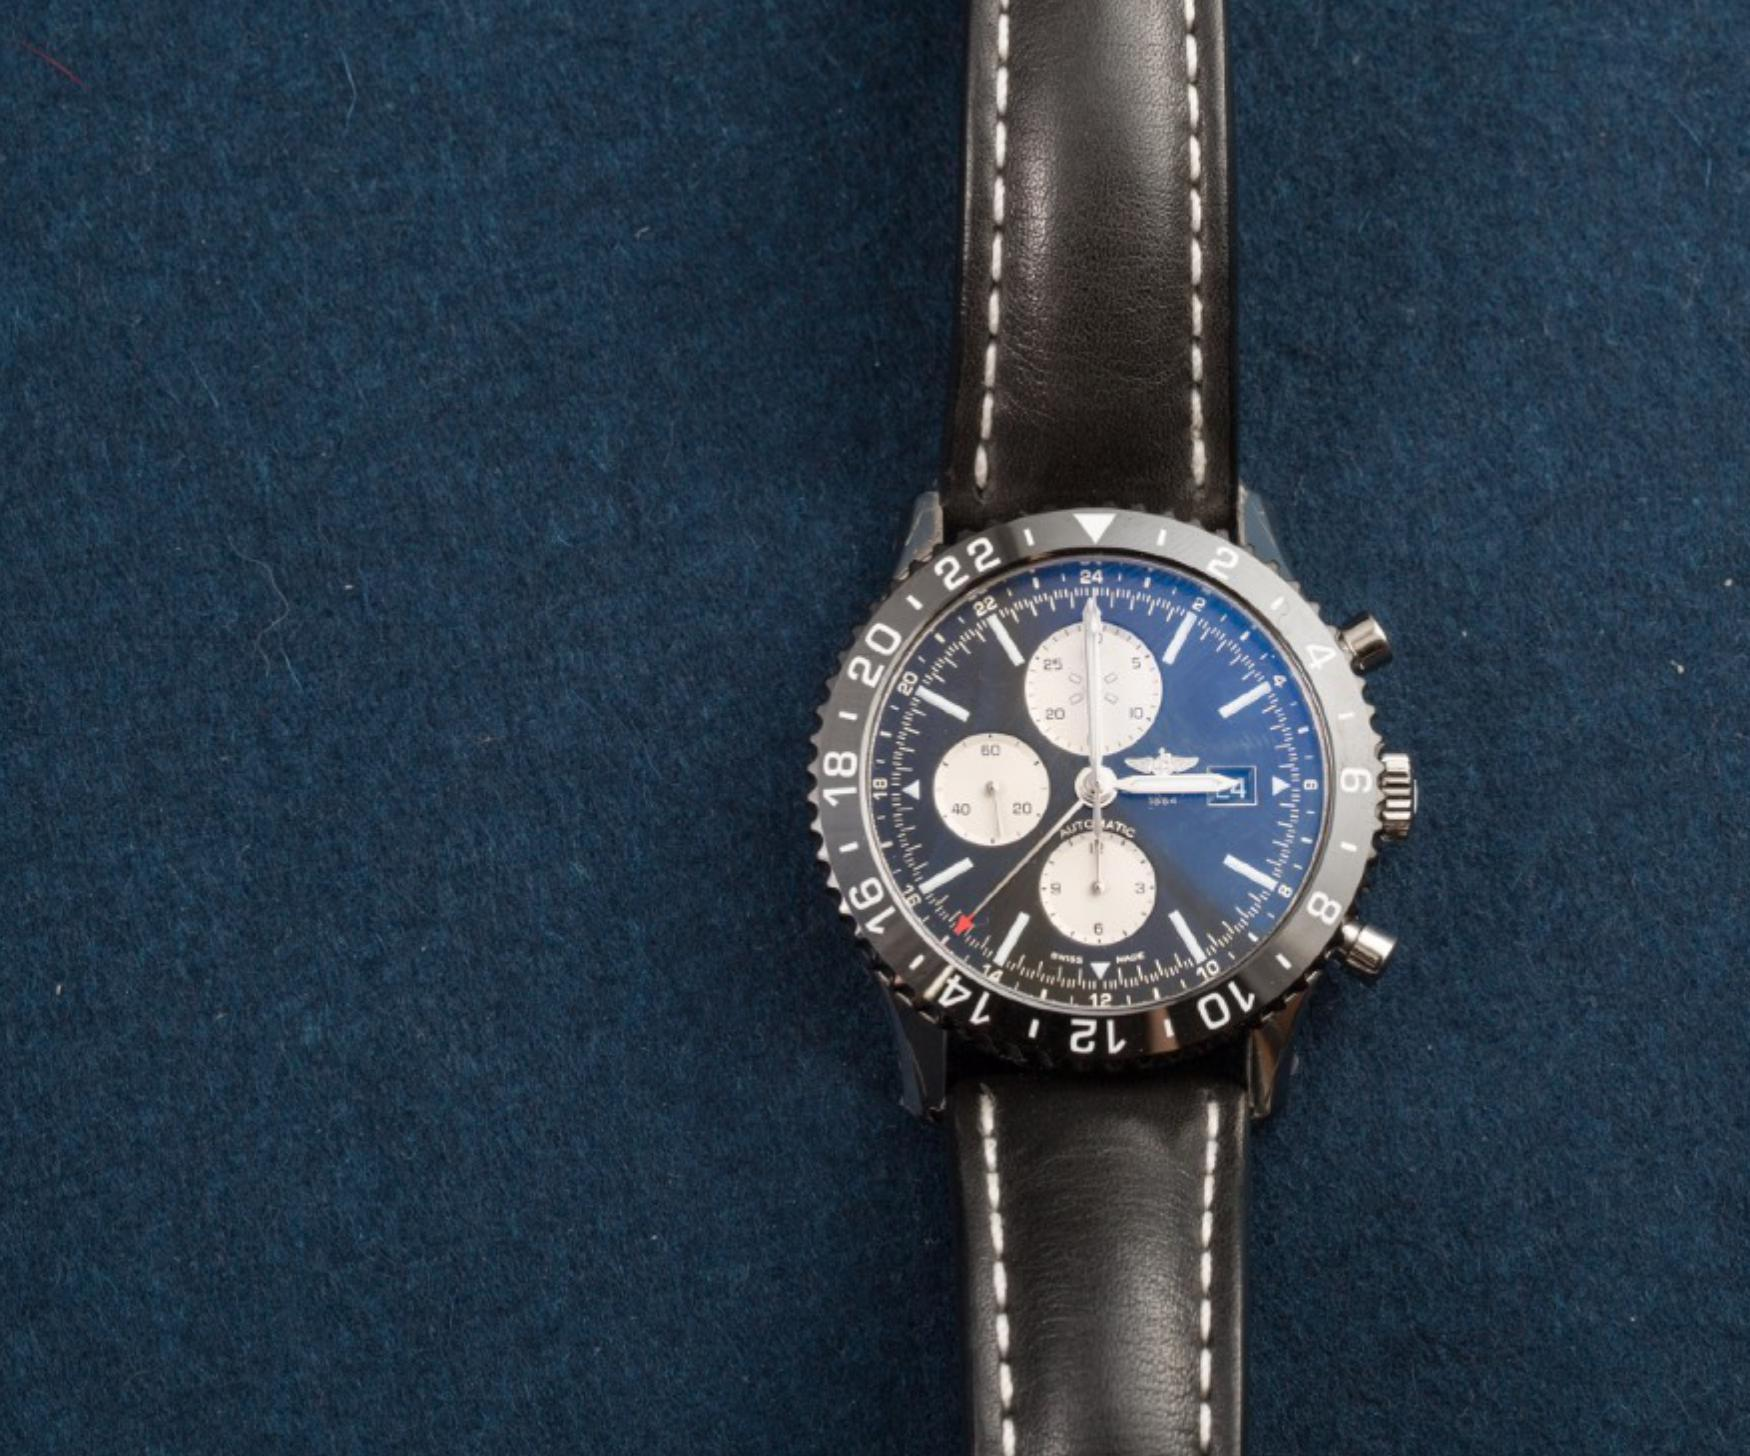 Lot 7 - BREITLING, New Old Stock, Chronoliner Chronograph with GMT